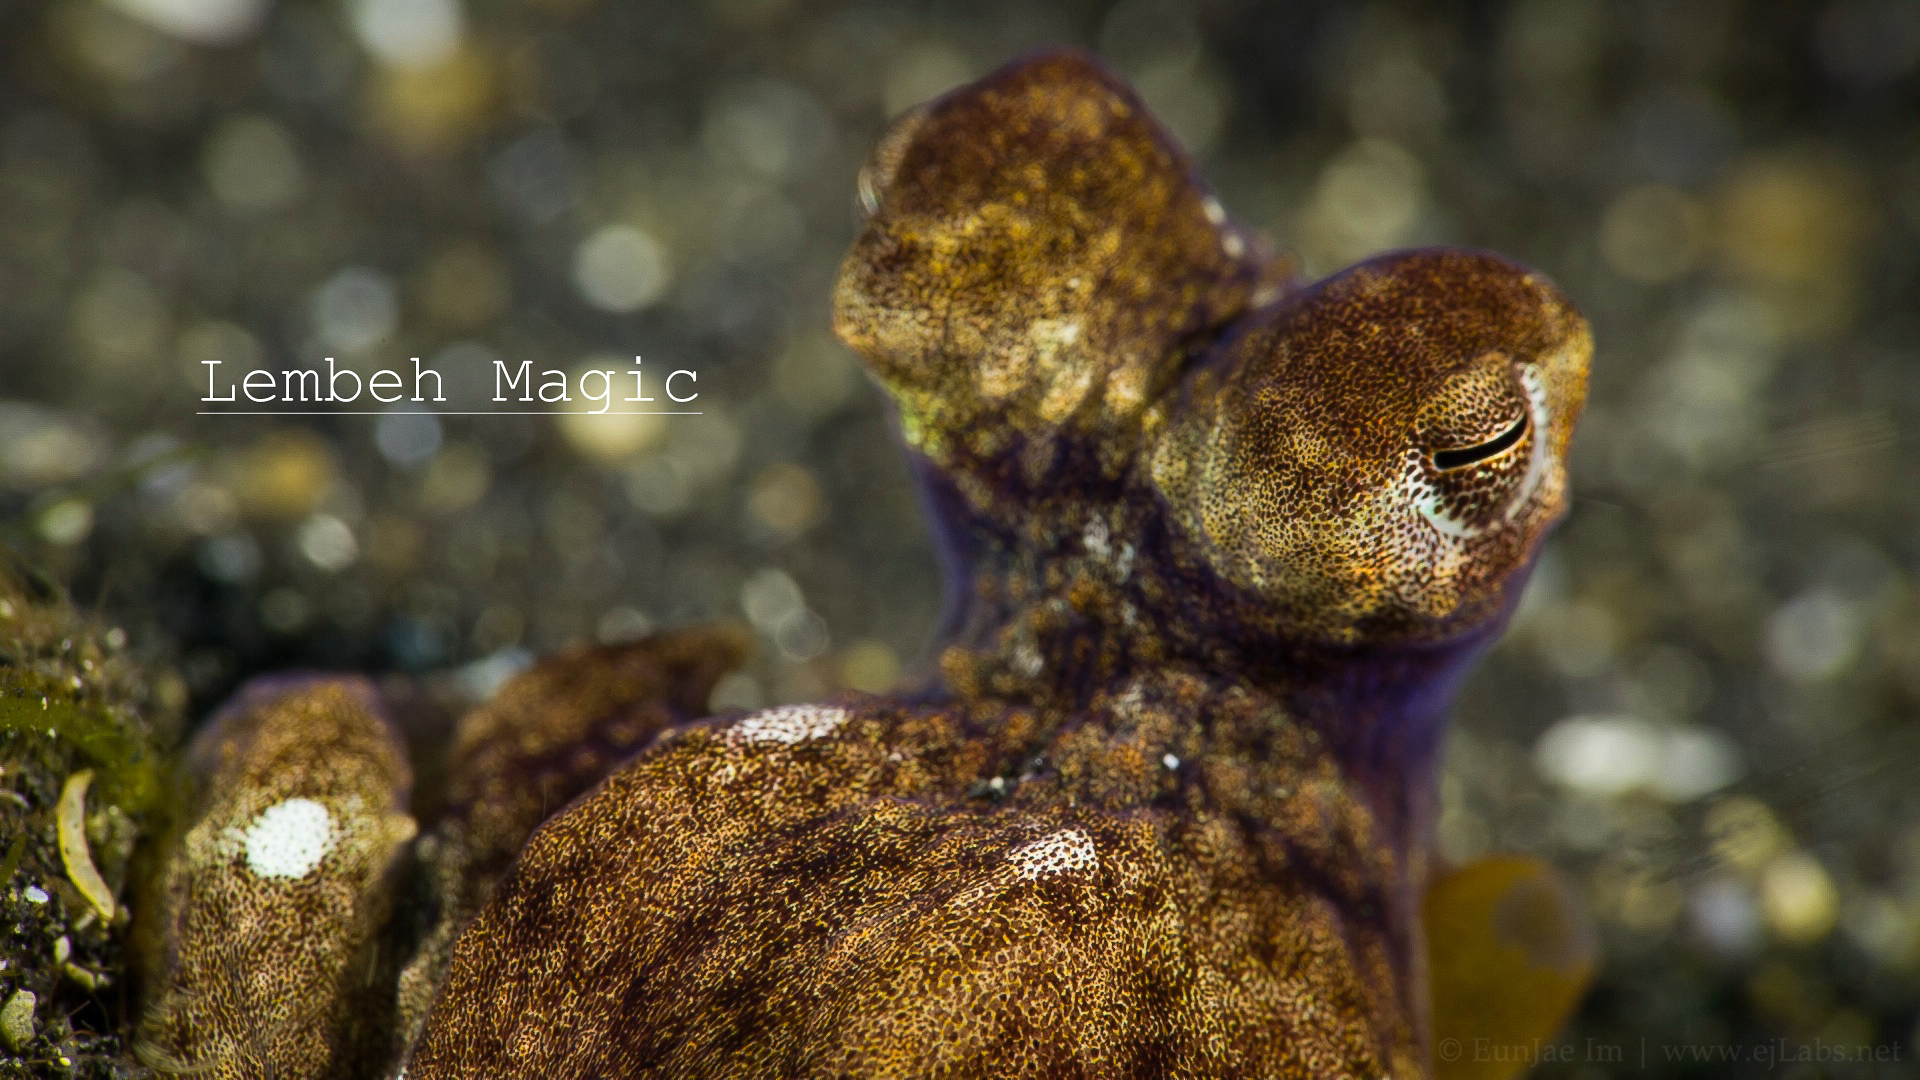 Lembeh Magic